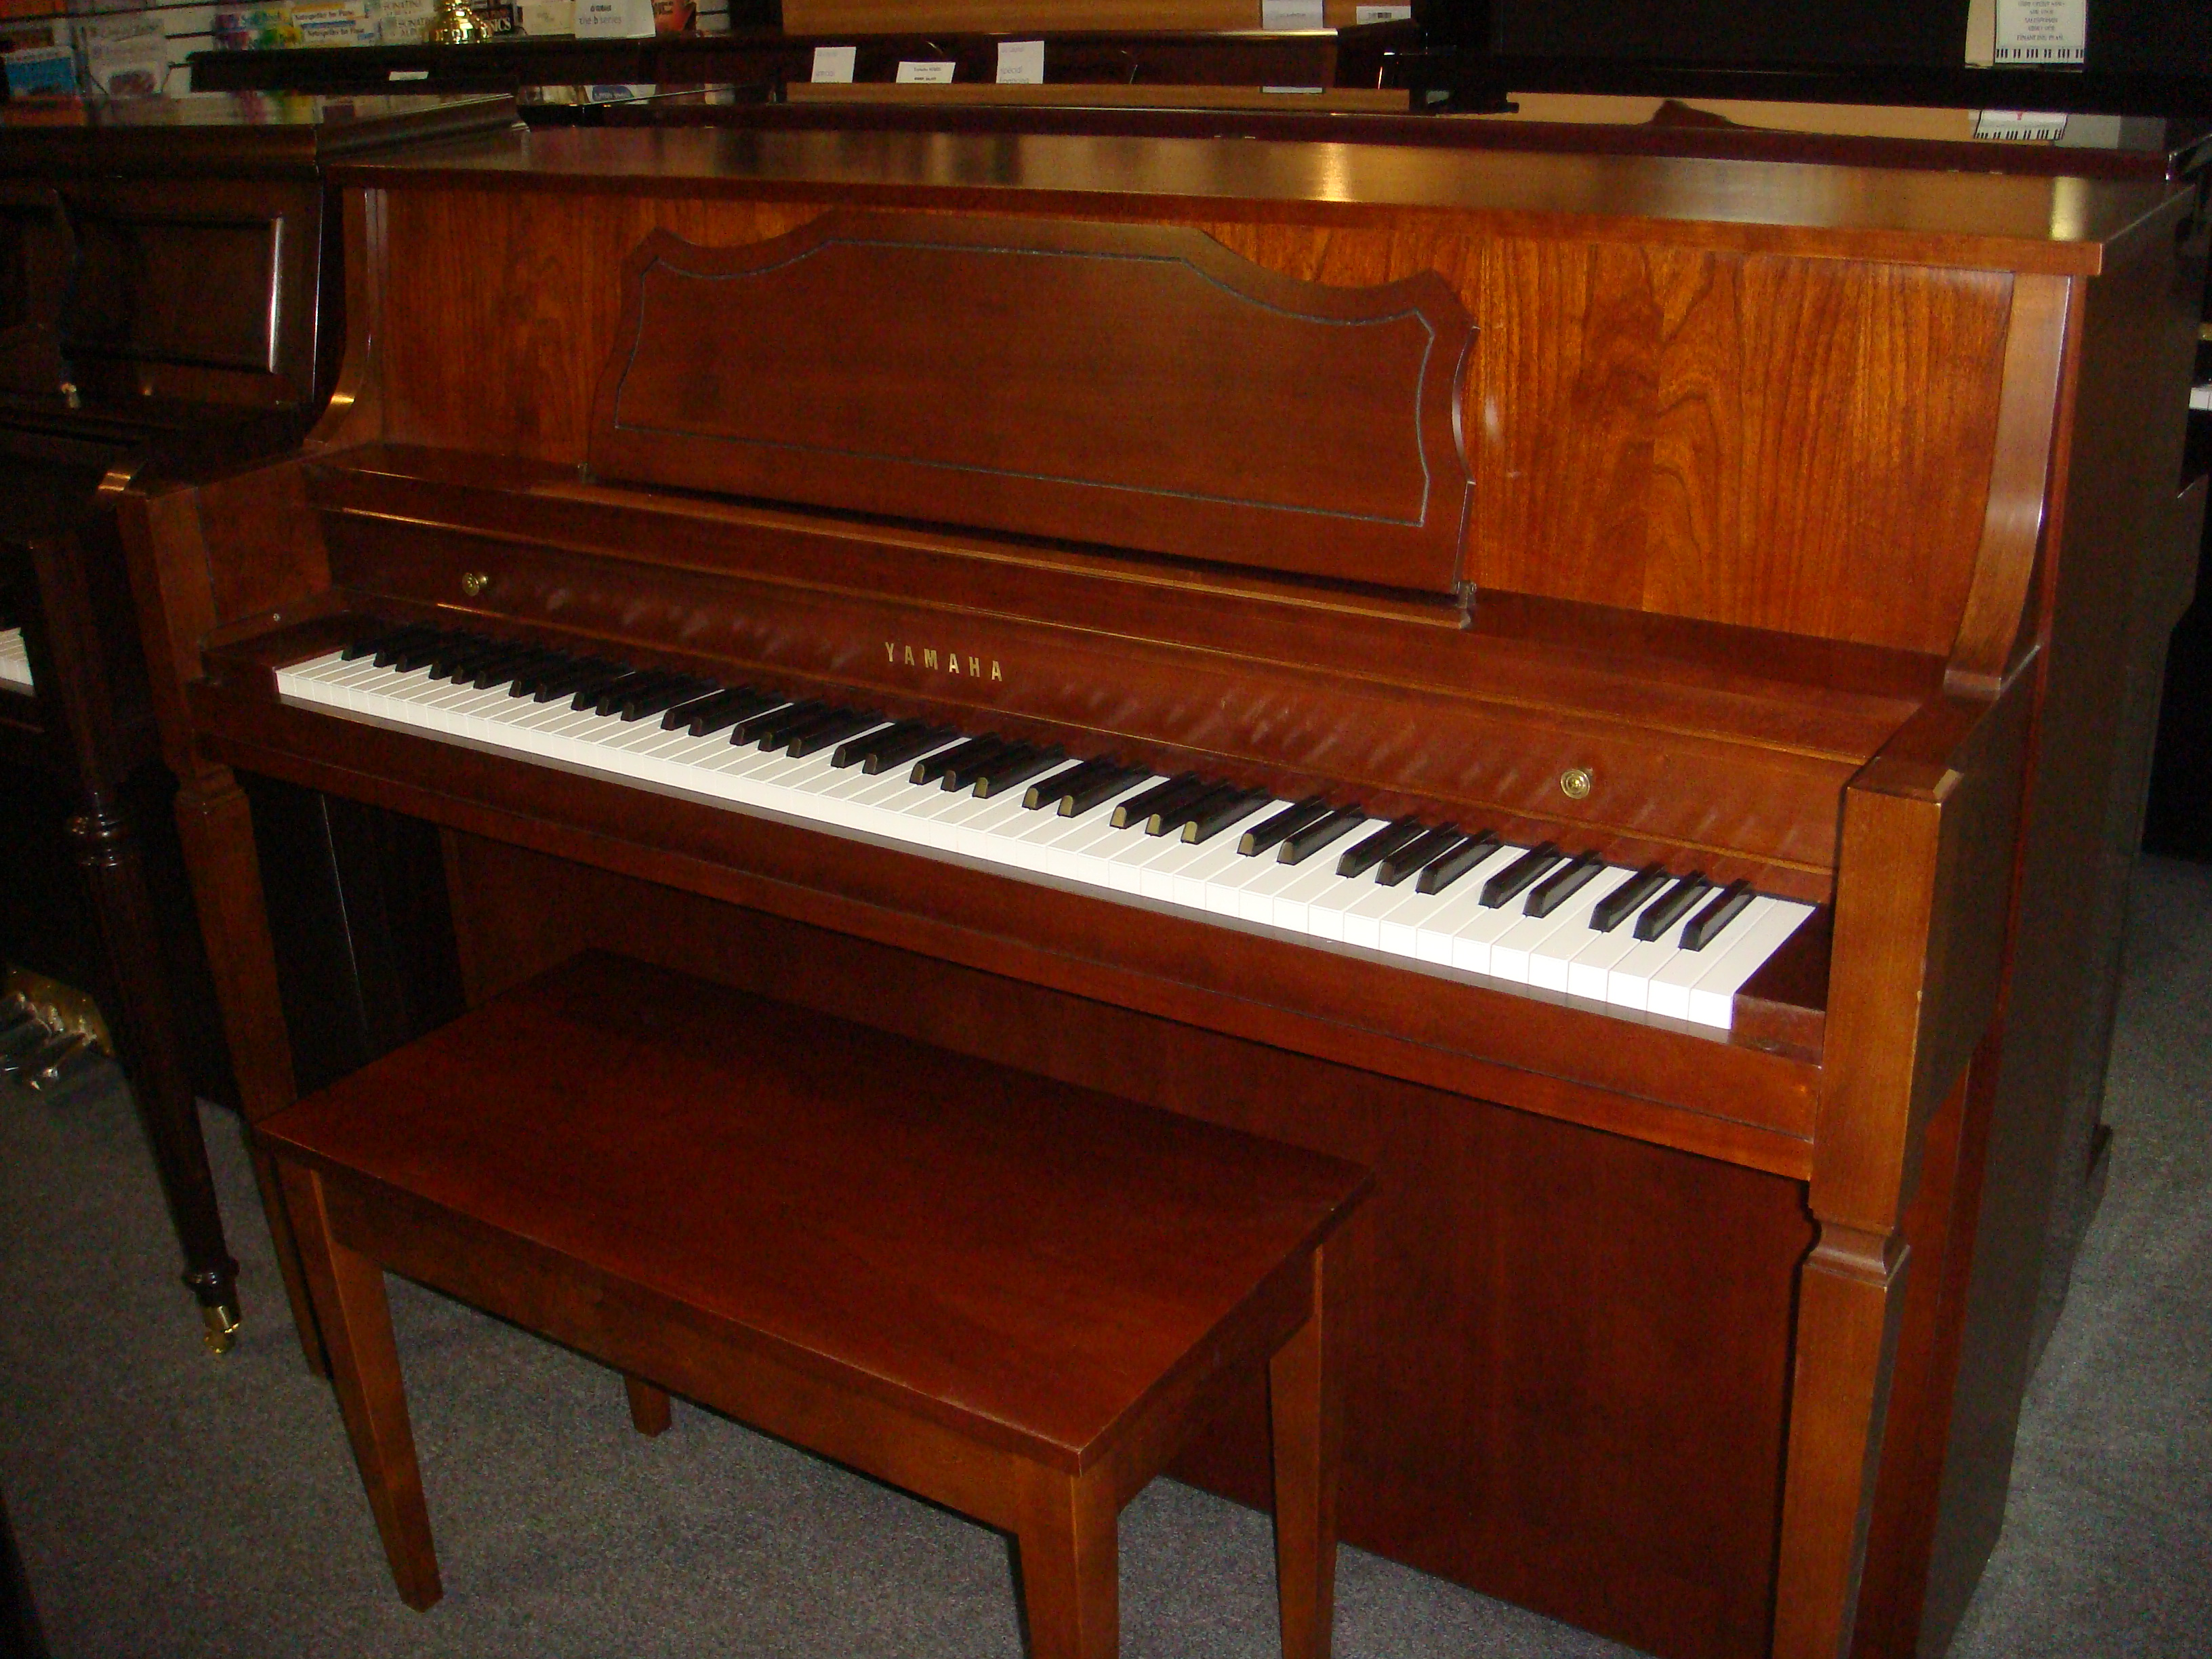 Yamaha Console Piano Prices Of Used Console Yamaha M450 Piano For Sale Nj